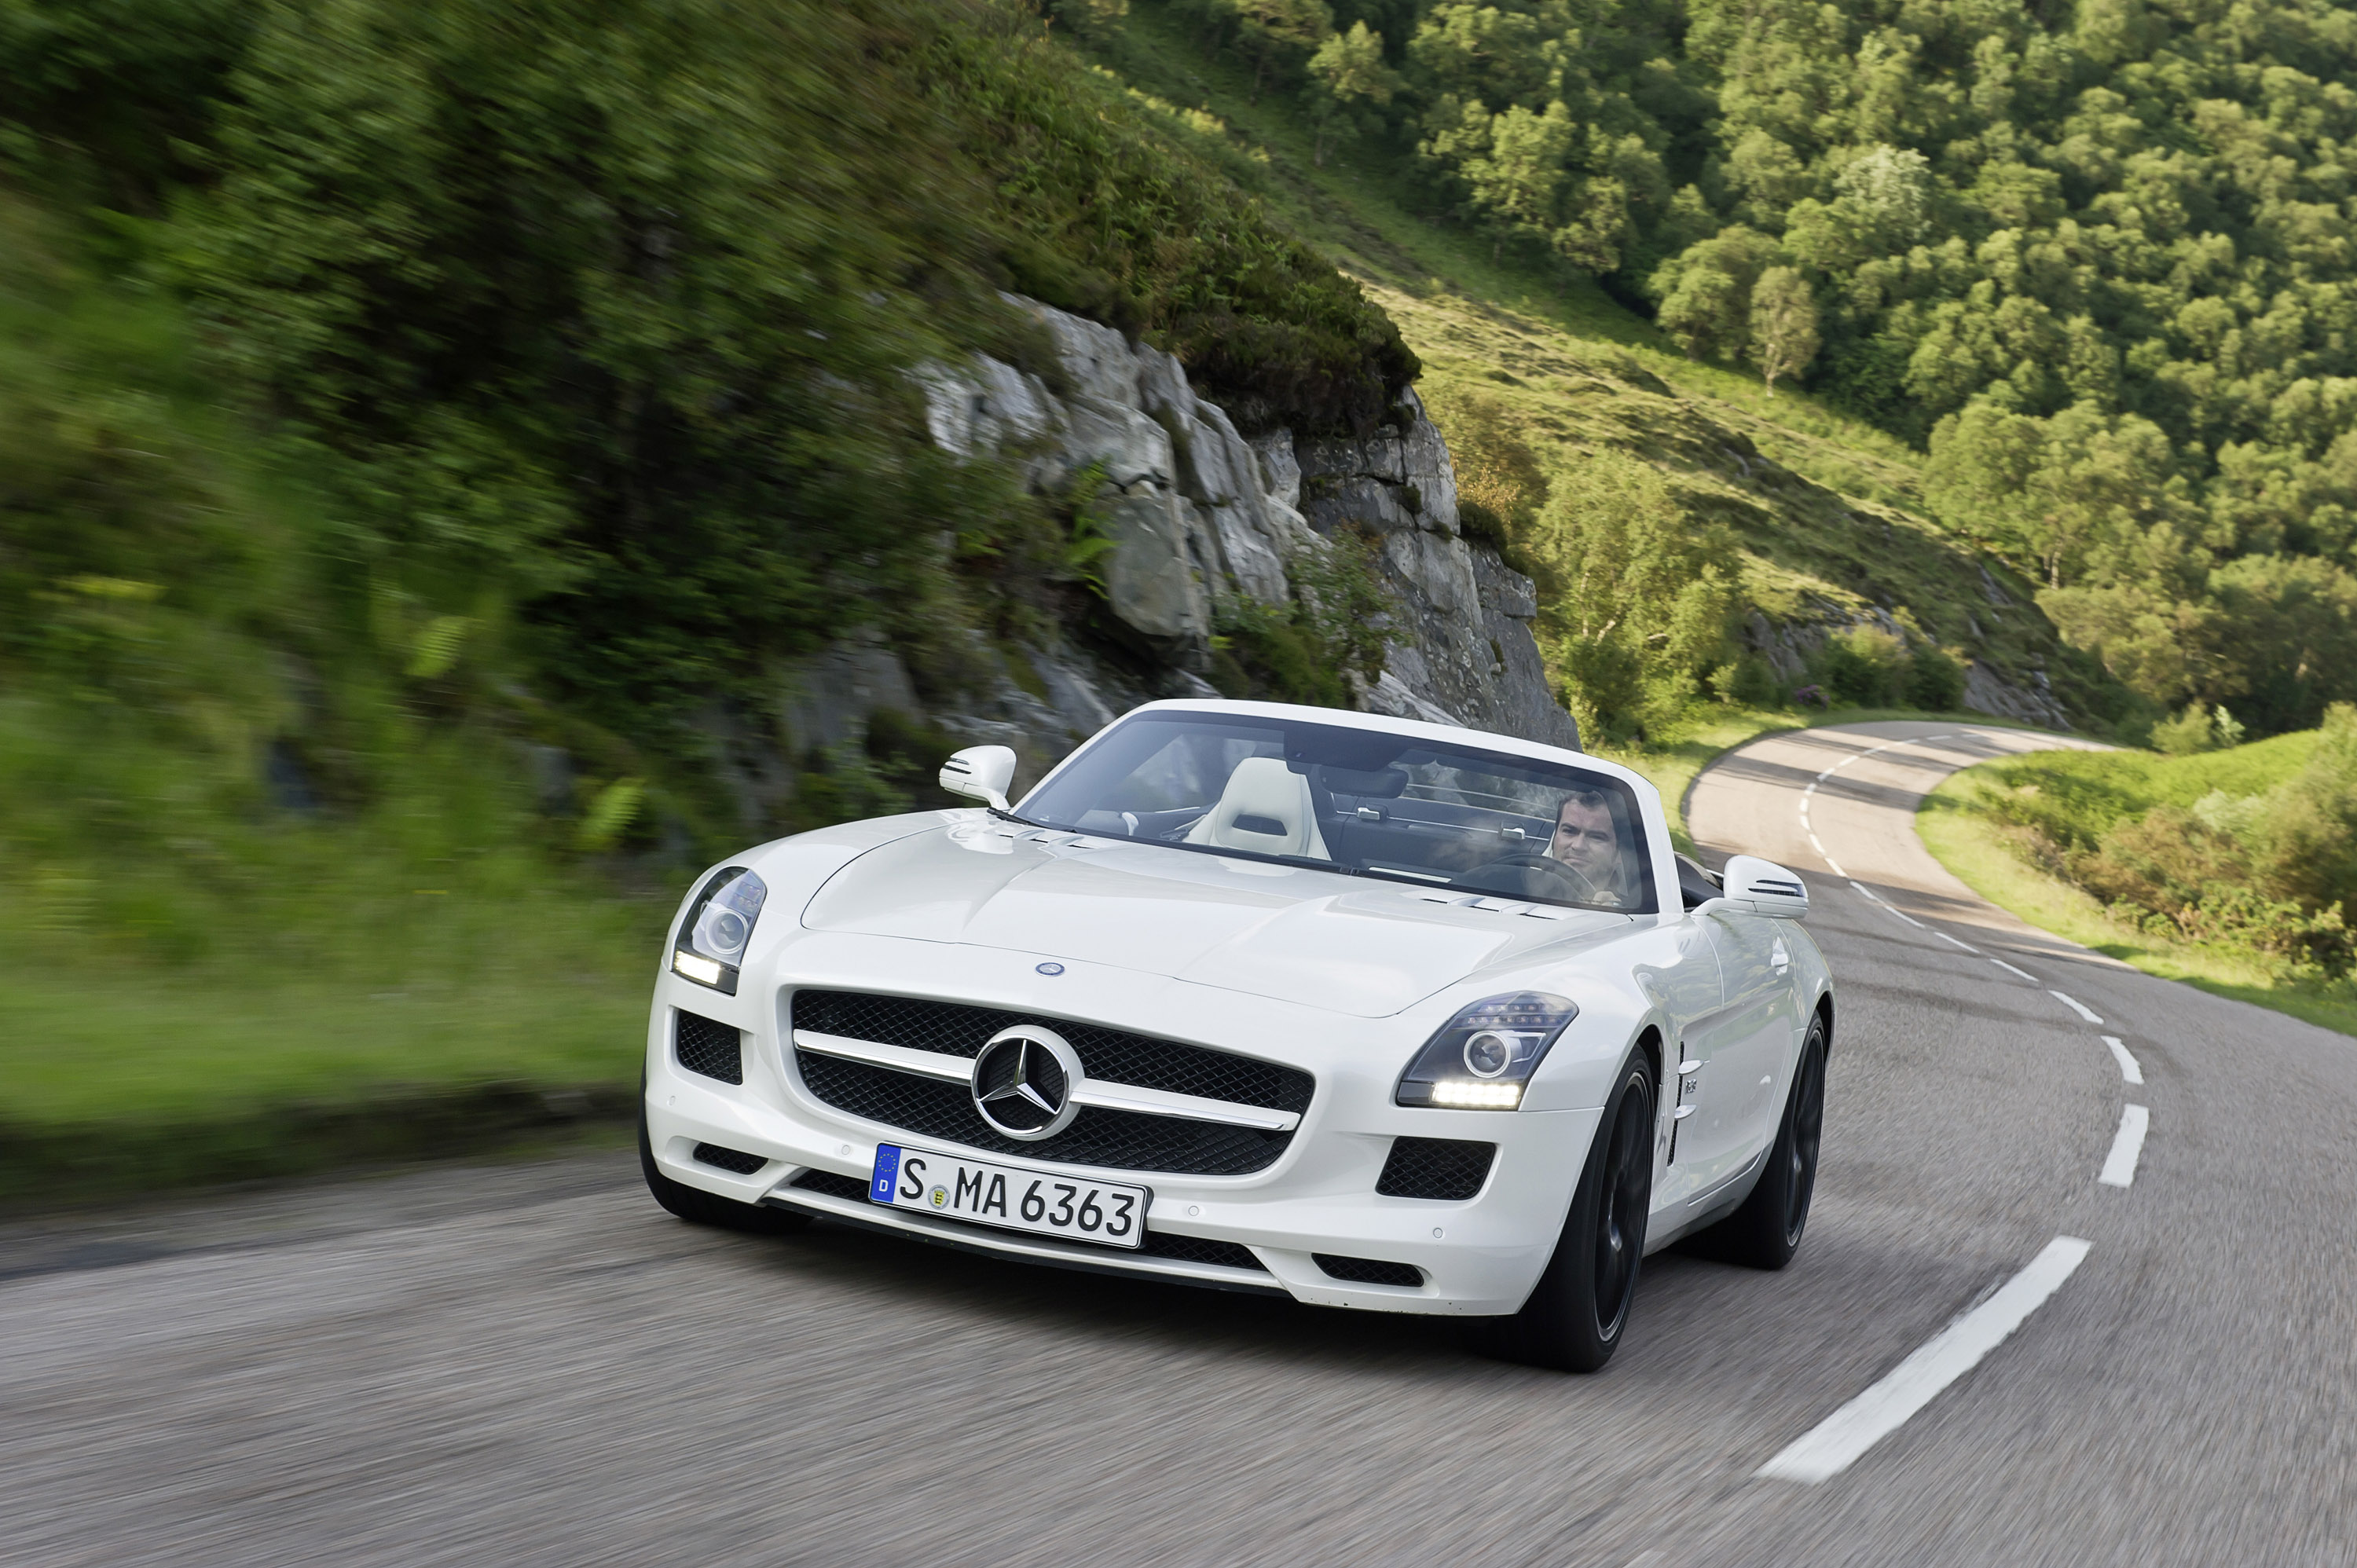 Mercedes Benz Sls Amg Gt Roadster Picture 2 Of 76 My 2013 Size 3000x1996